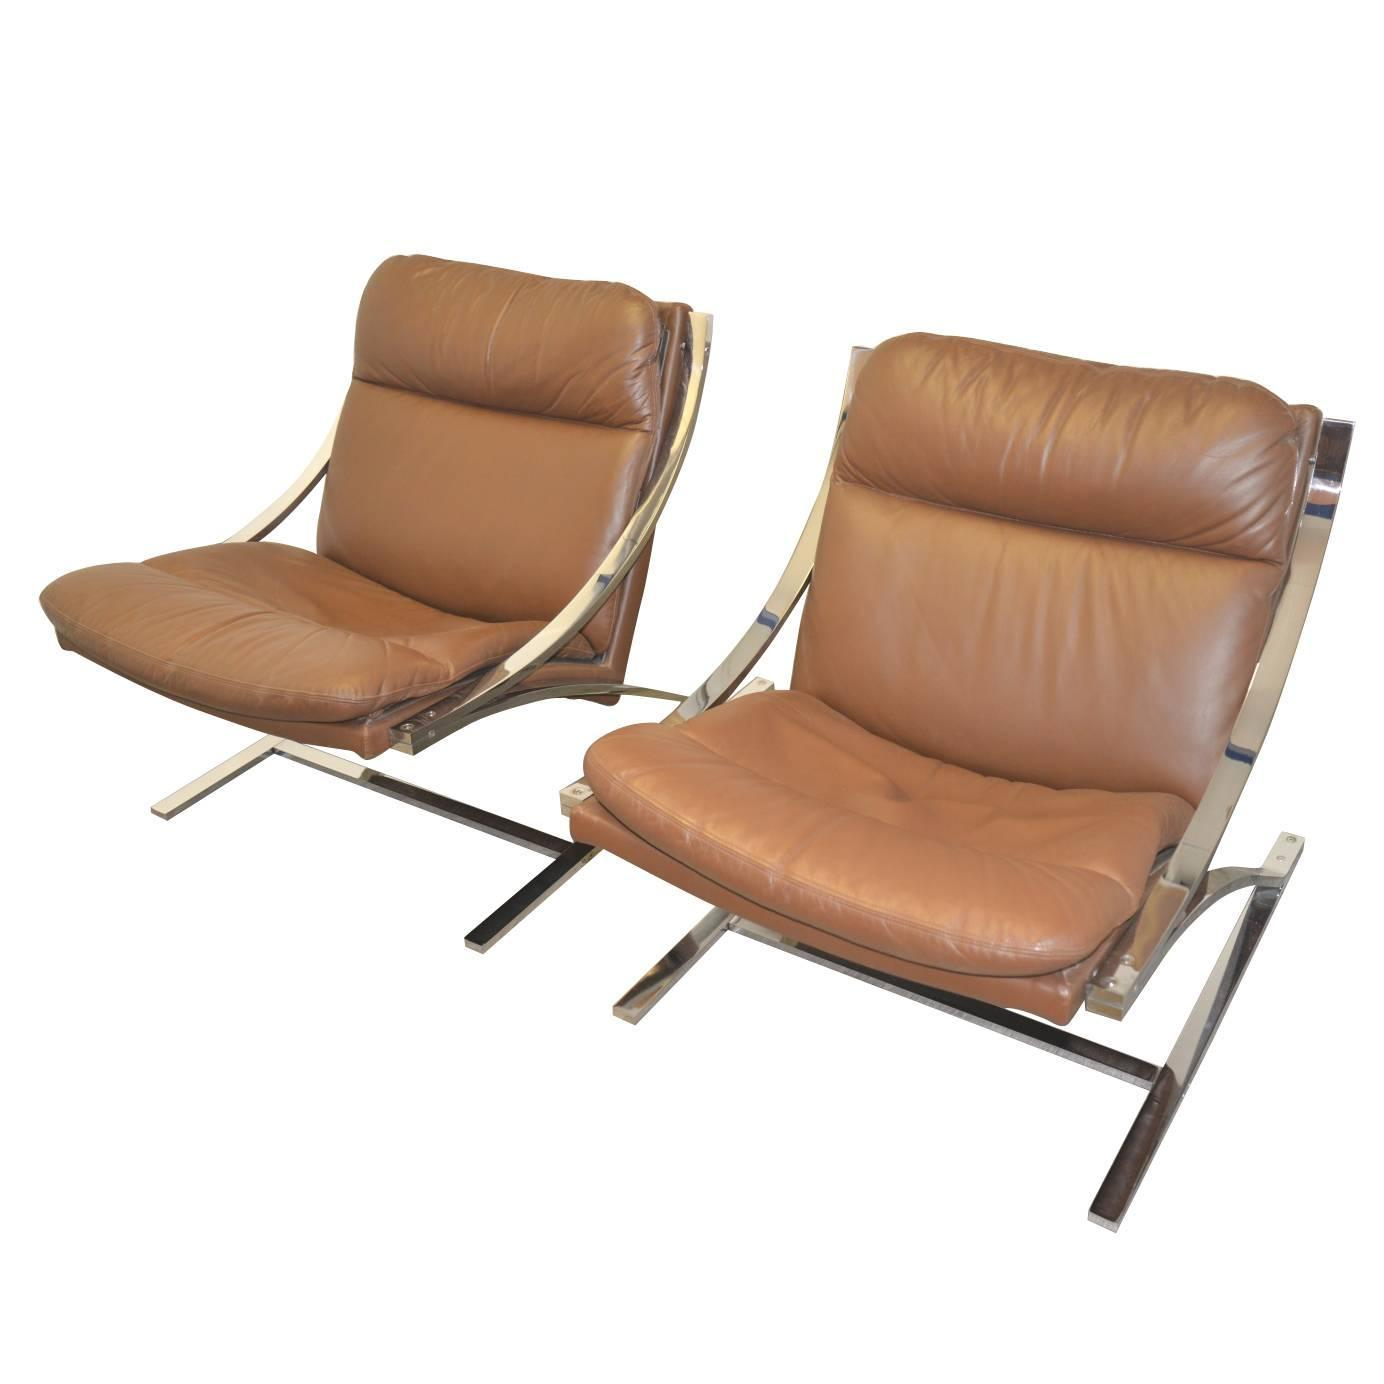 Z Chair For Sale Paul Tuttle Quotzeta Quot Lounge Chairs For Strassle Of